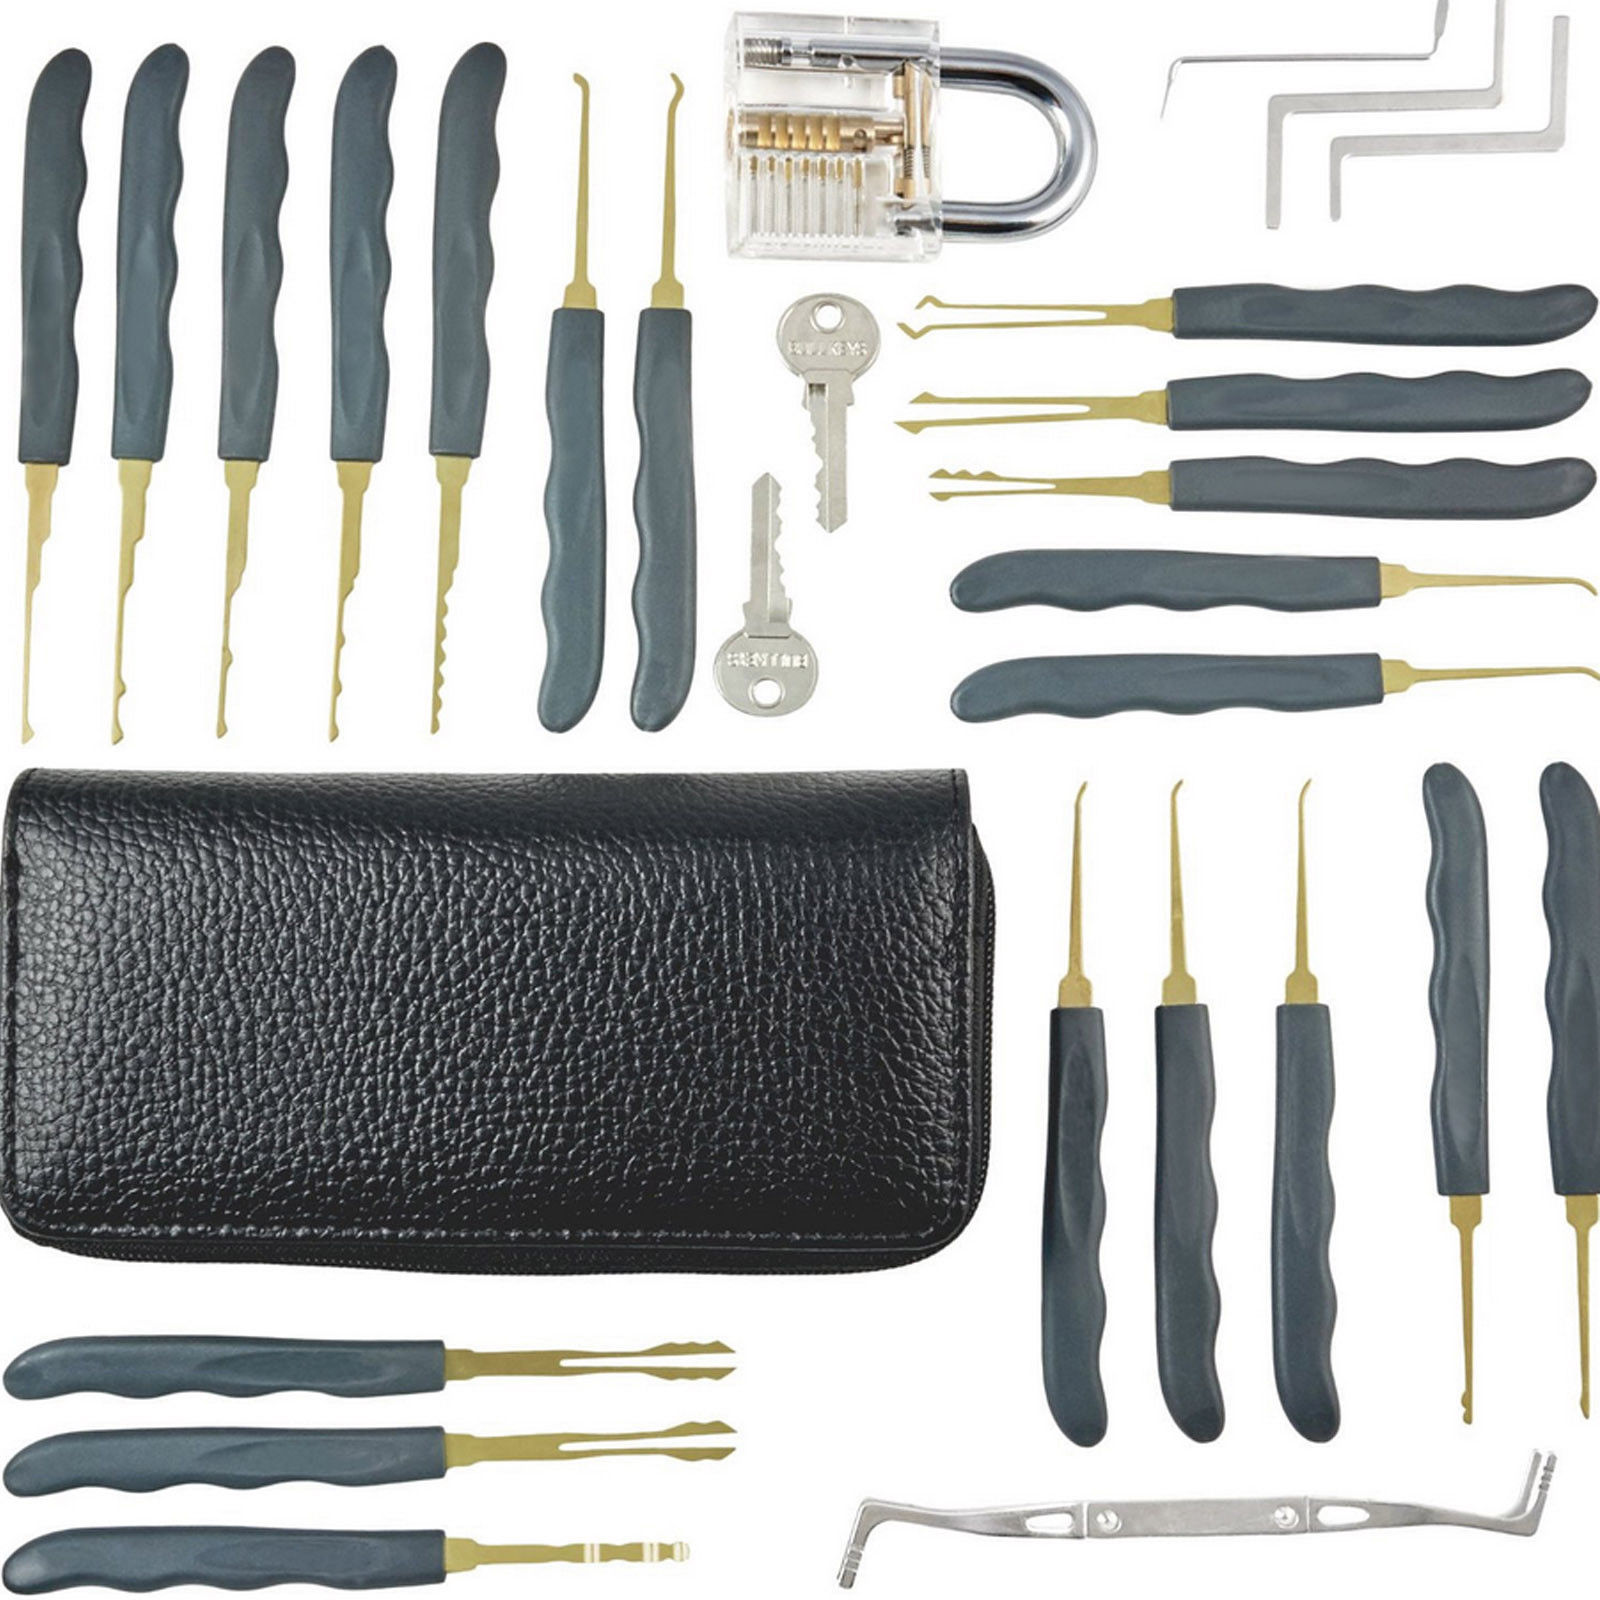 24pcs lock pick training set locksmith practice train skill key